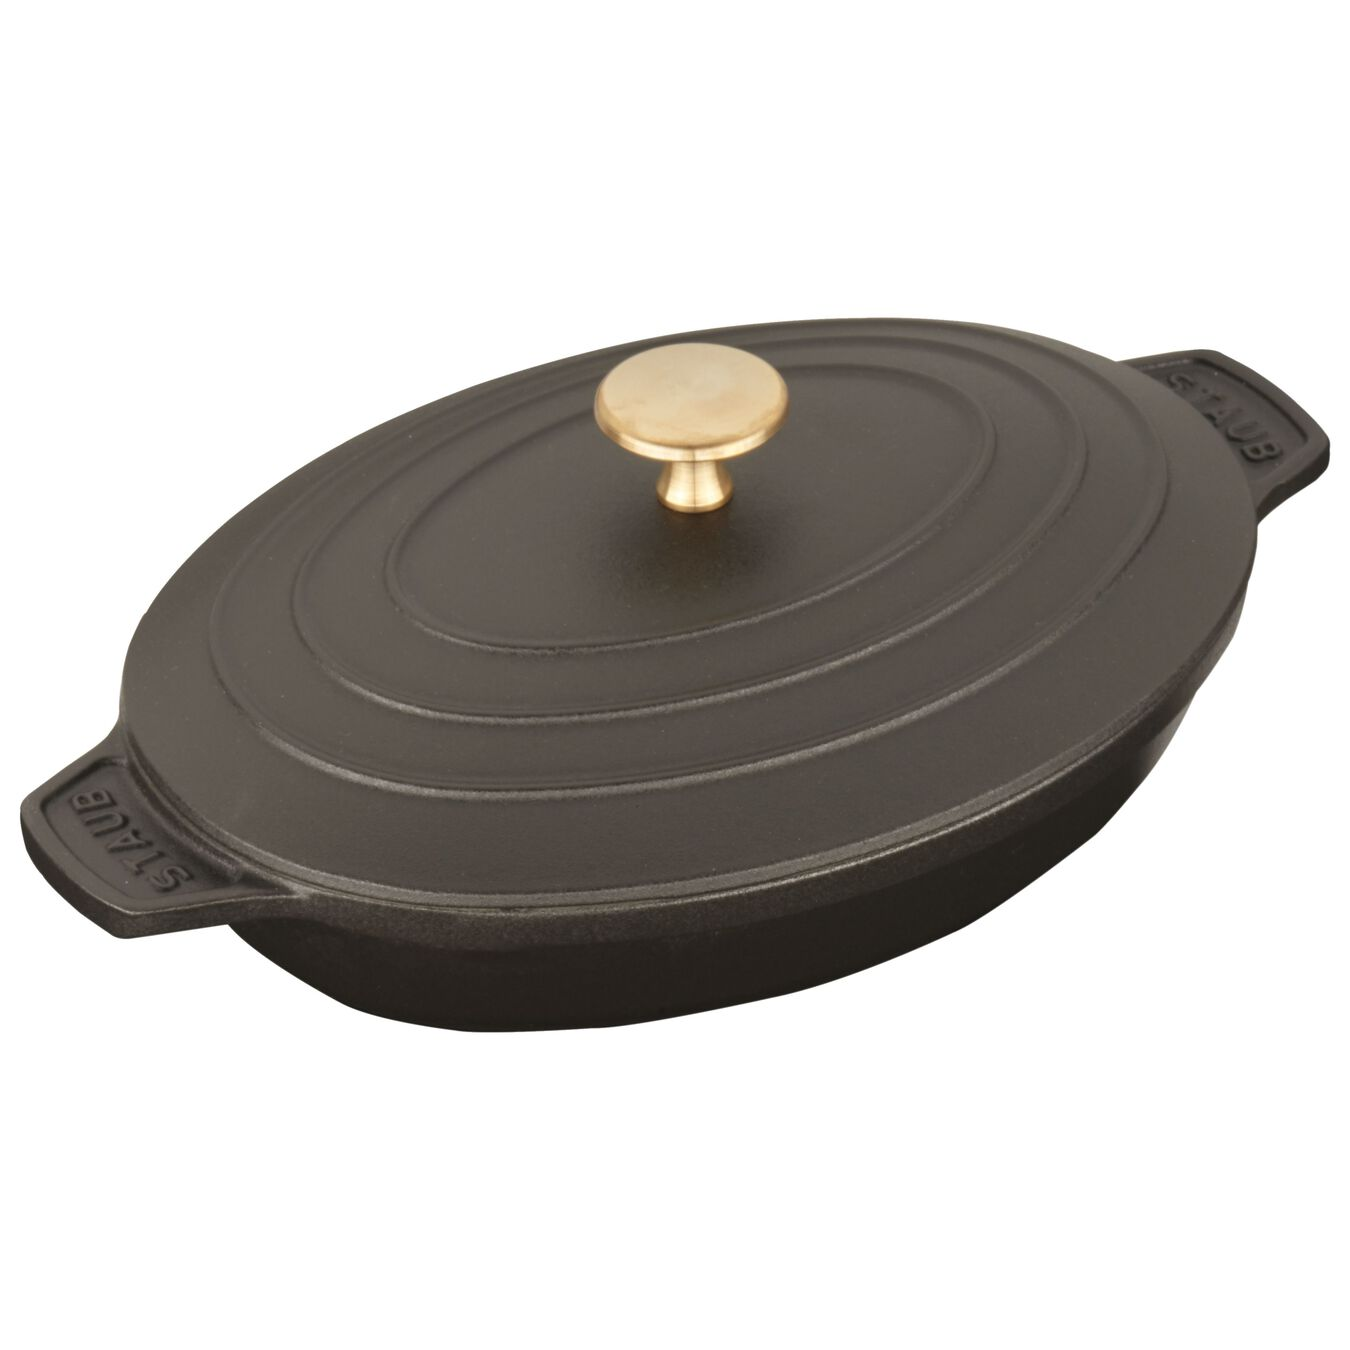 9-inch x 6.6-inch Oval Covered Baking Dish - Matte Black,,large 3